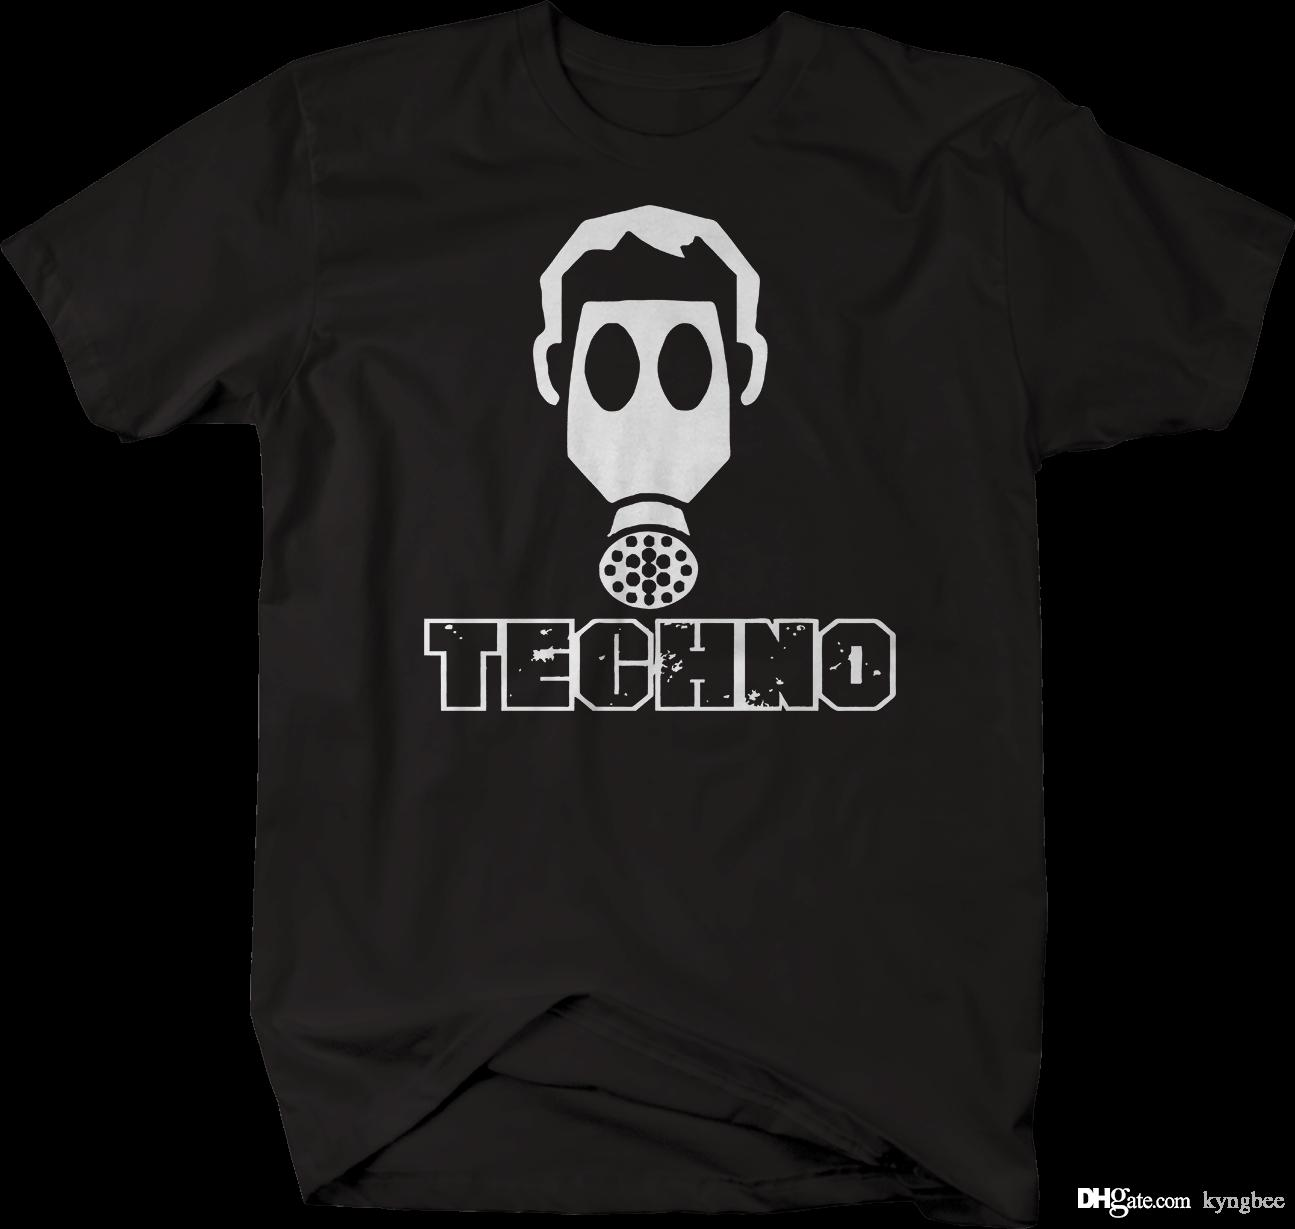 3669ca666 Techno Dance Gas Mask Tshirt Hilarious Tee Shirts Online T Shirt Buy From  Kyngbee